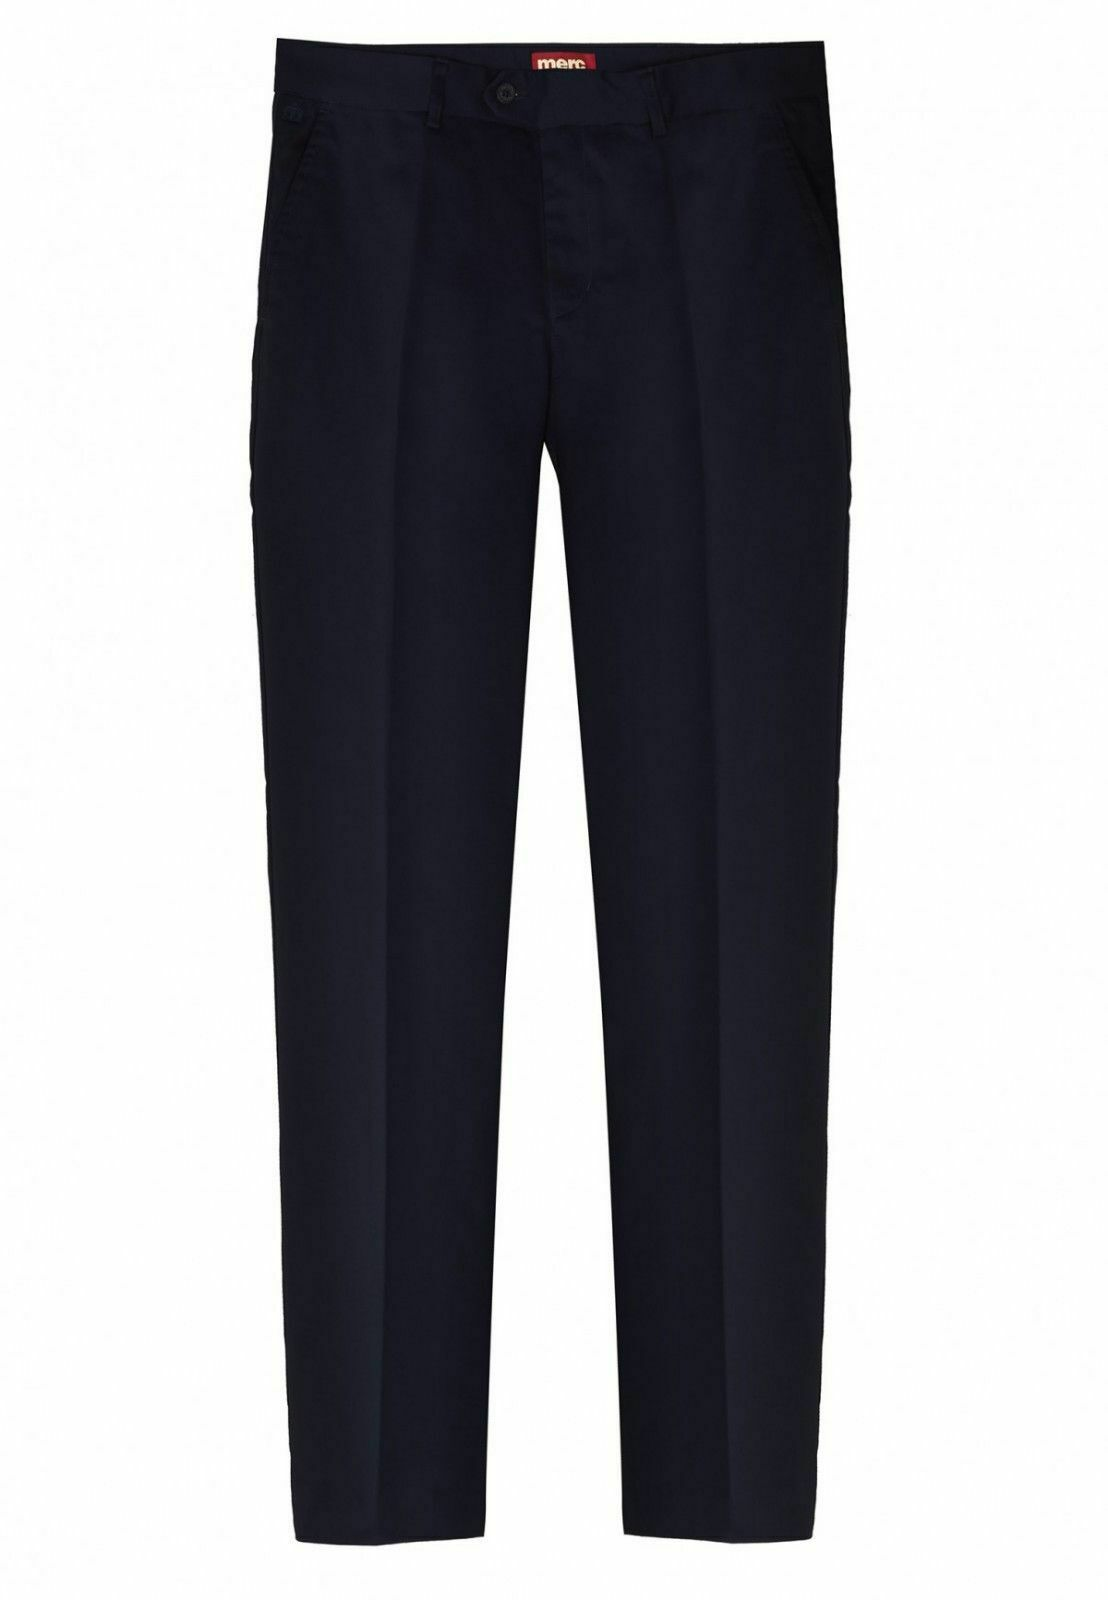 MENS MERC LONDON MOD CLASSIC STA PRESS TROUSER WINSTON - NAVY